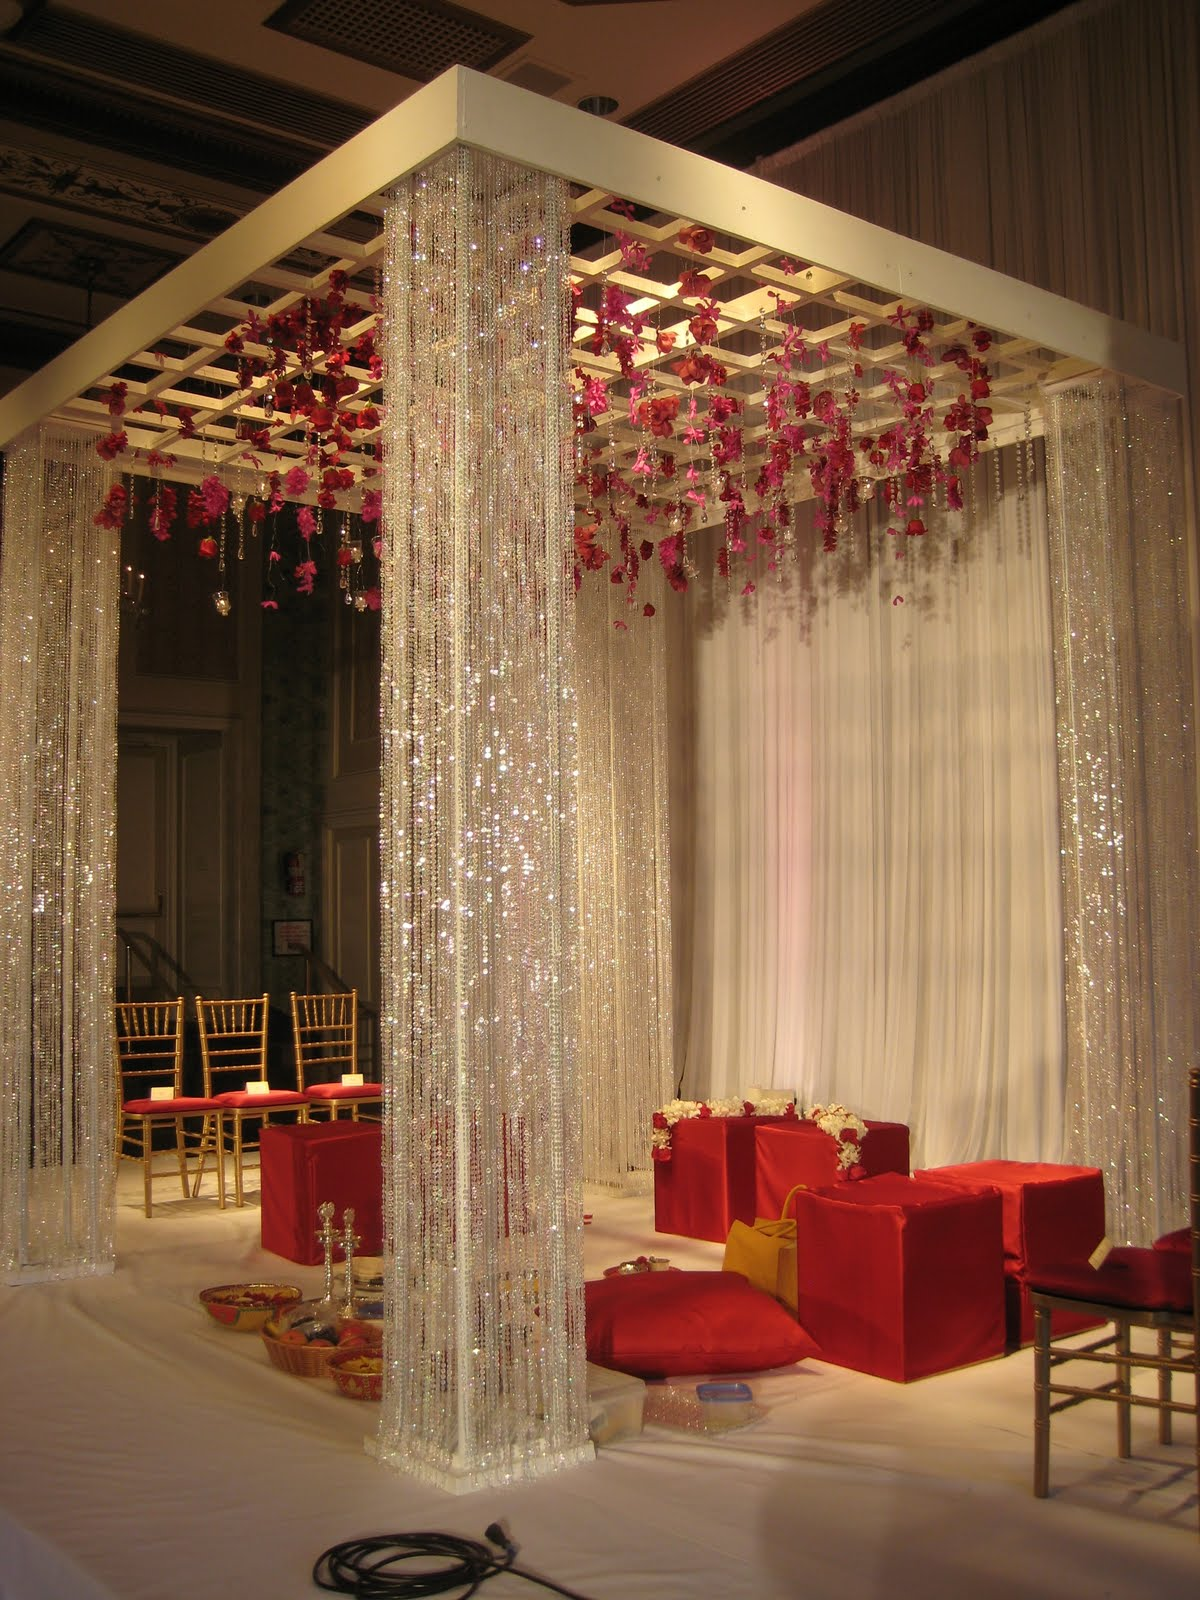 Wedding Stages & Mandap Decoration Ideas : Decorate It To